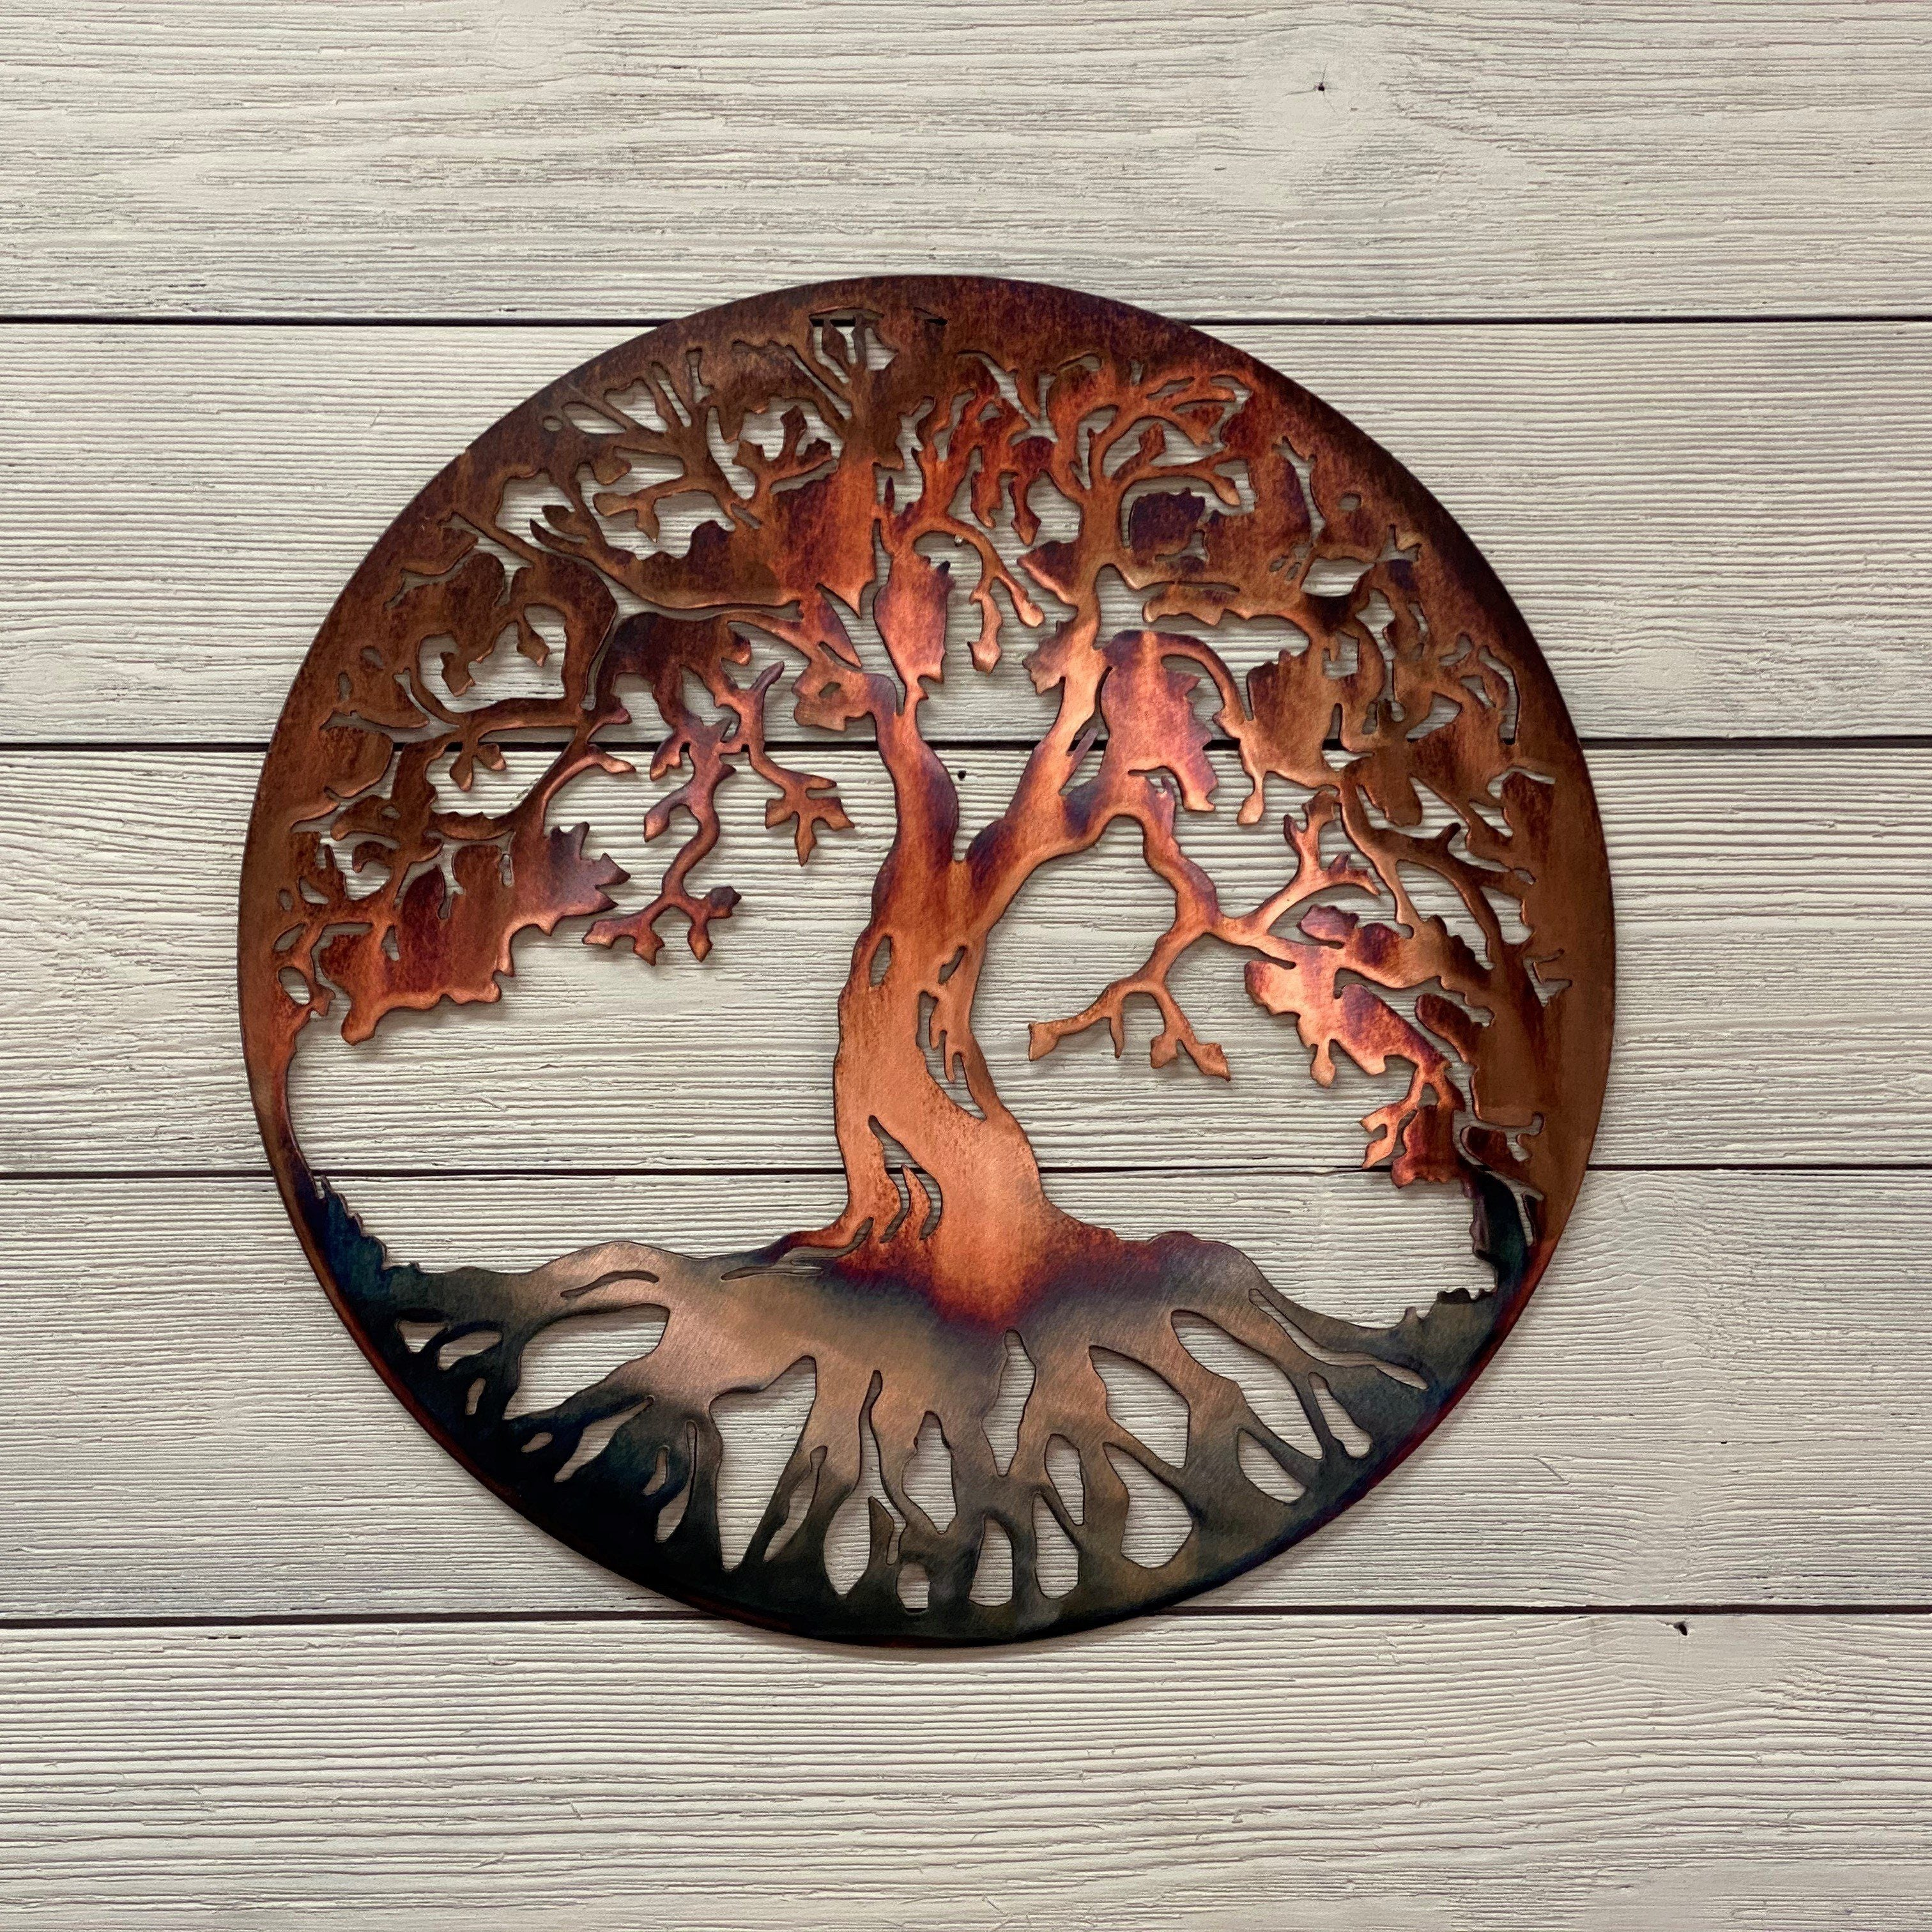 Classic Tree of Life Wall Art Third Shift Fabrication 15"